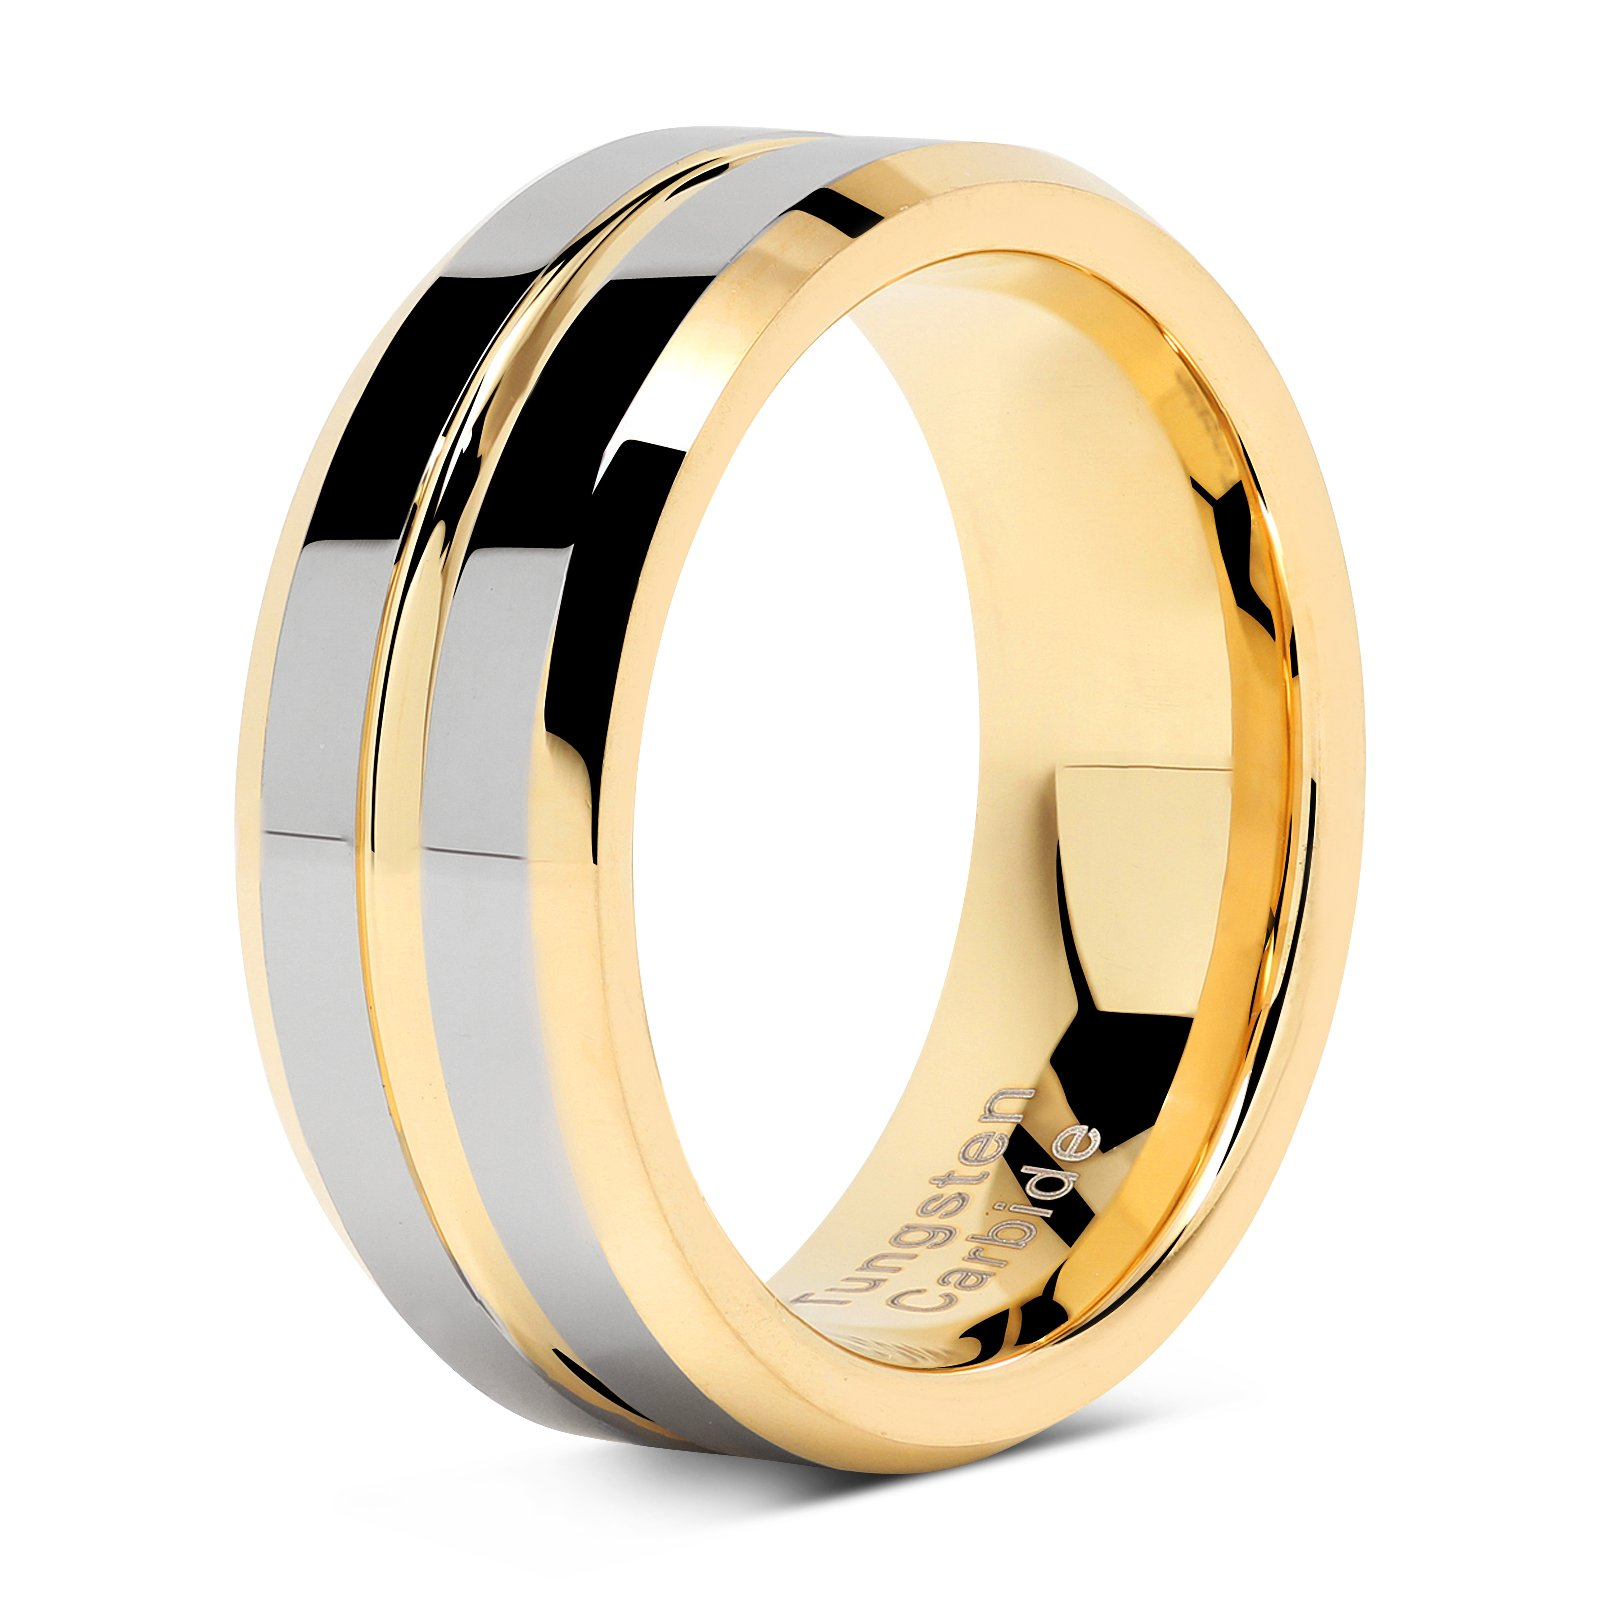 Tungsten Rings for Mens Wedding Bands Gold Silver Two Tone Grooved Center Line Size 8-15 (13) by 100S JEWELRY (Image #2)